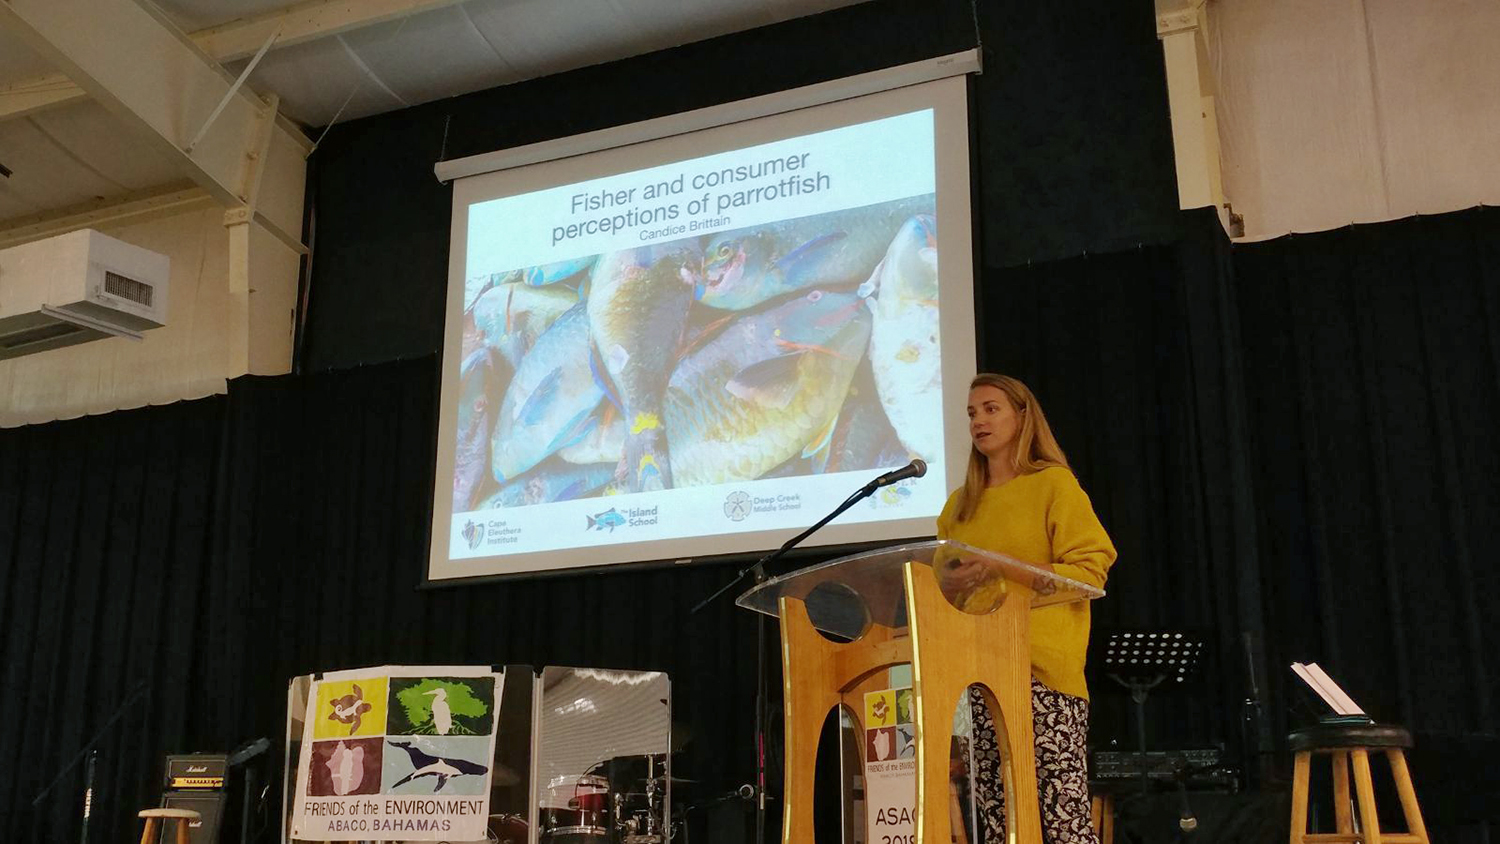 Candice Brittain talking about the importance of parrotfish conservation in The Bahamas.